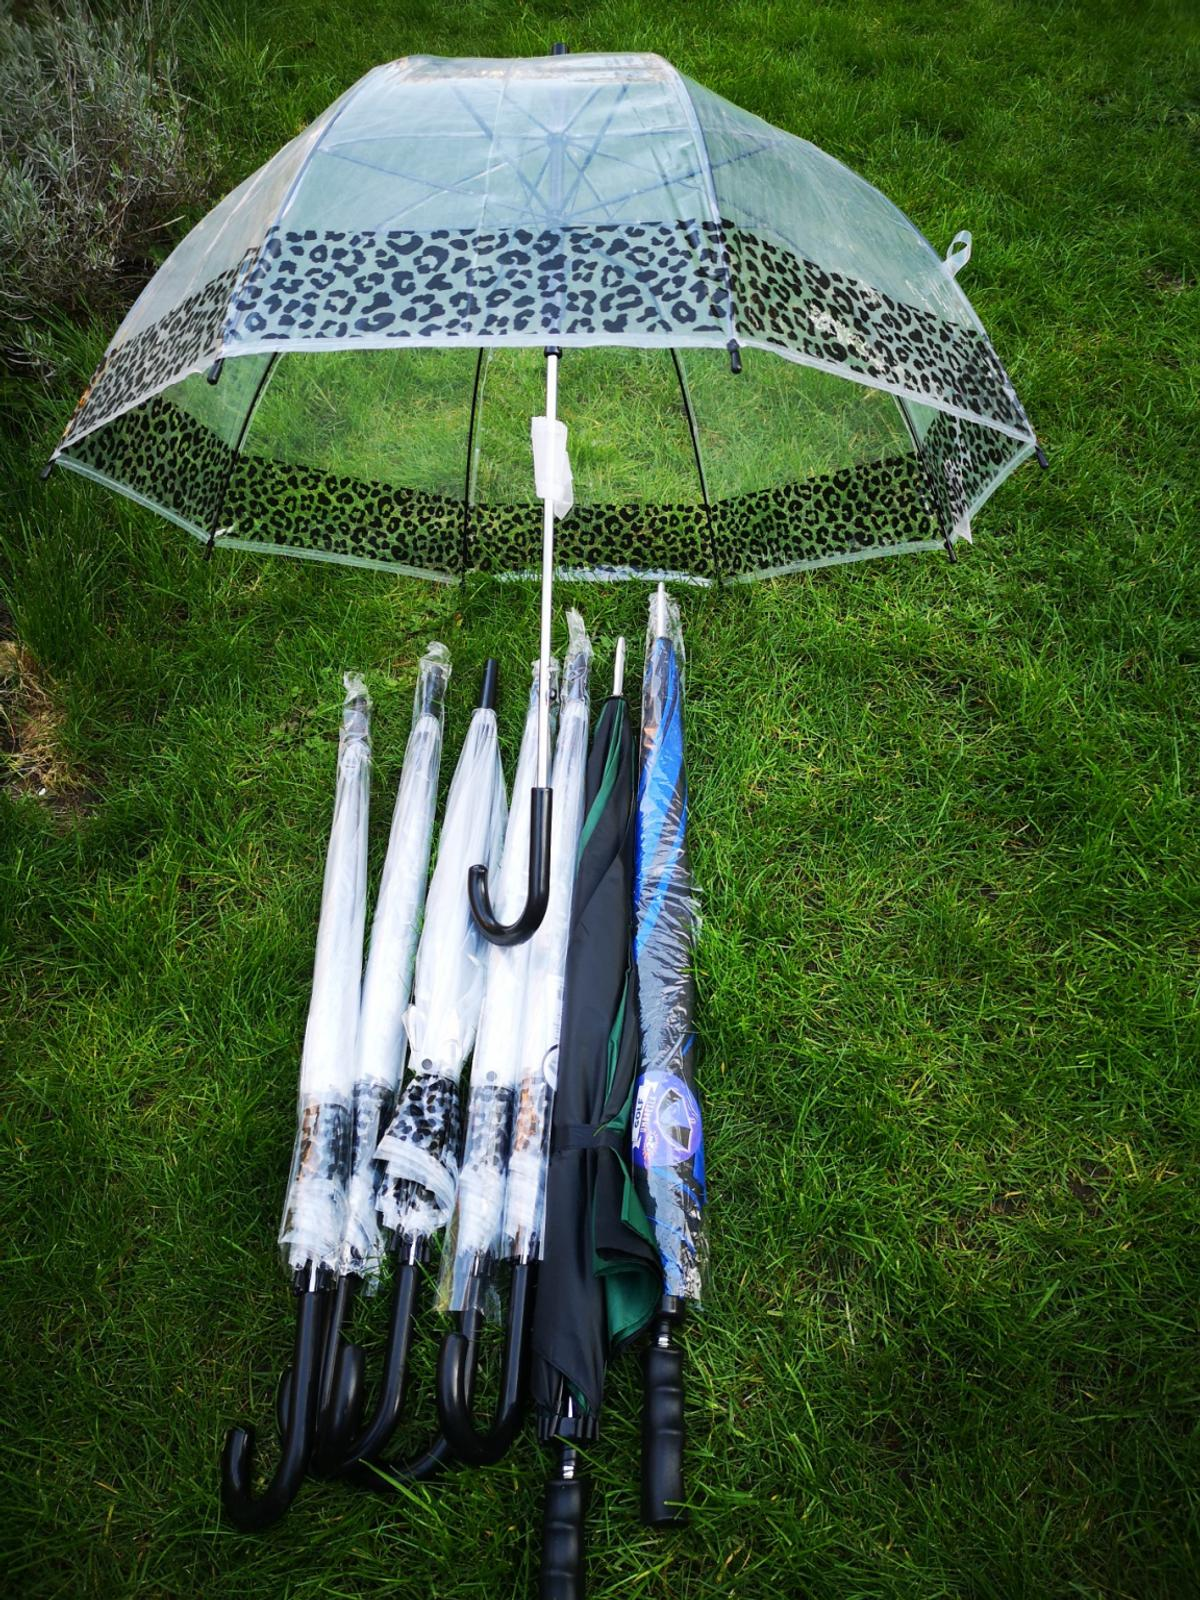 selling new never used umrellas .. selling all as a bundle and no silly offers please can deliver locally or £3.00 extra up to 10miles